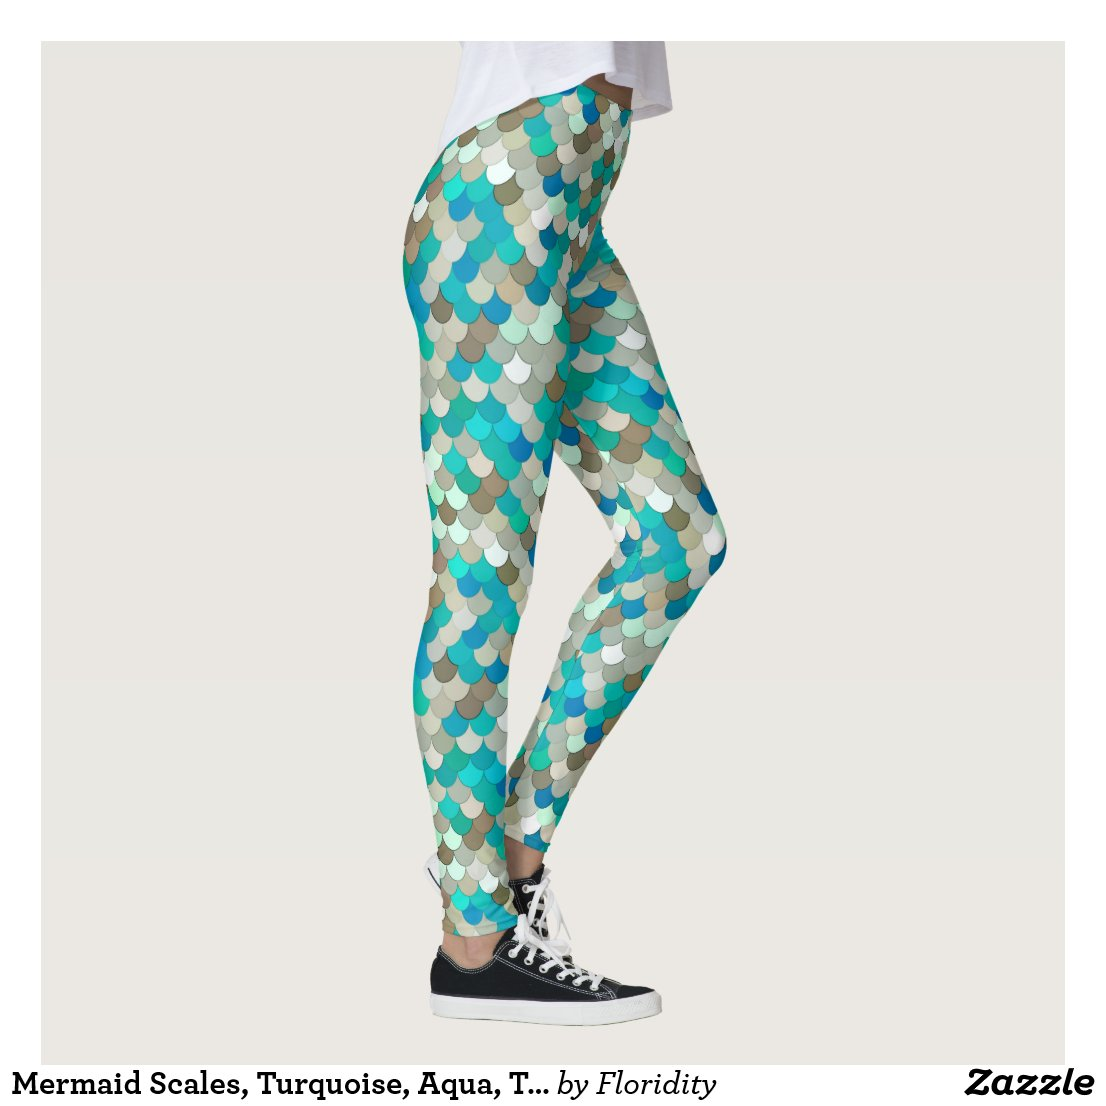 Mermaid Scales, Turquoise, Aqua, Taupe, & Cream Leggings